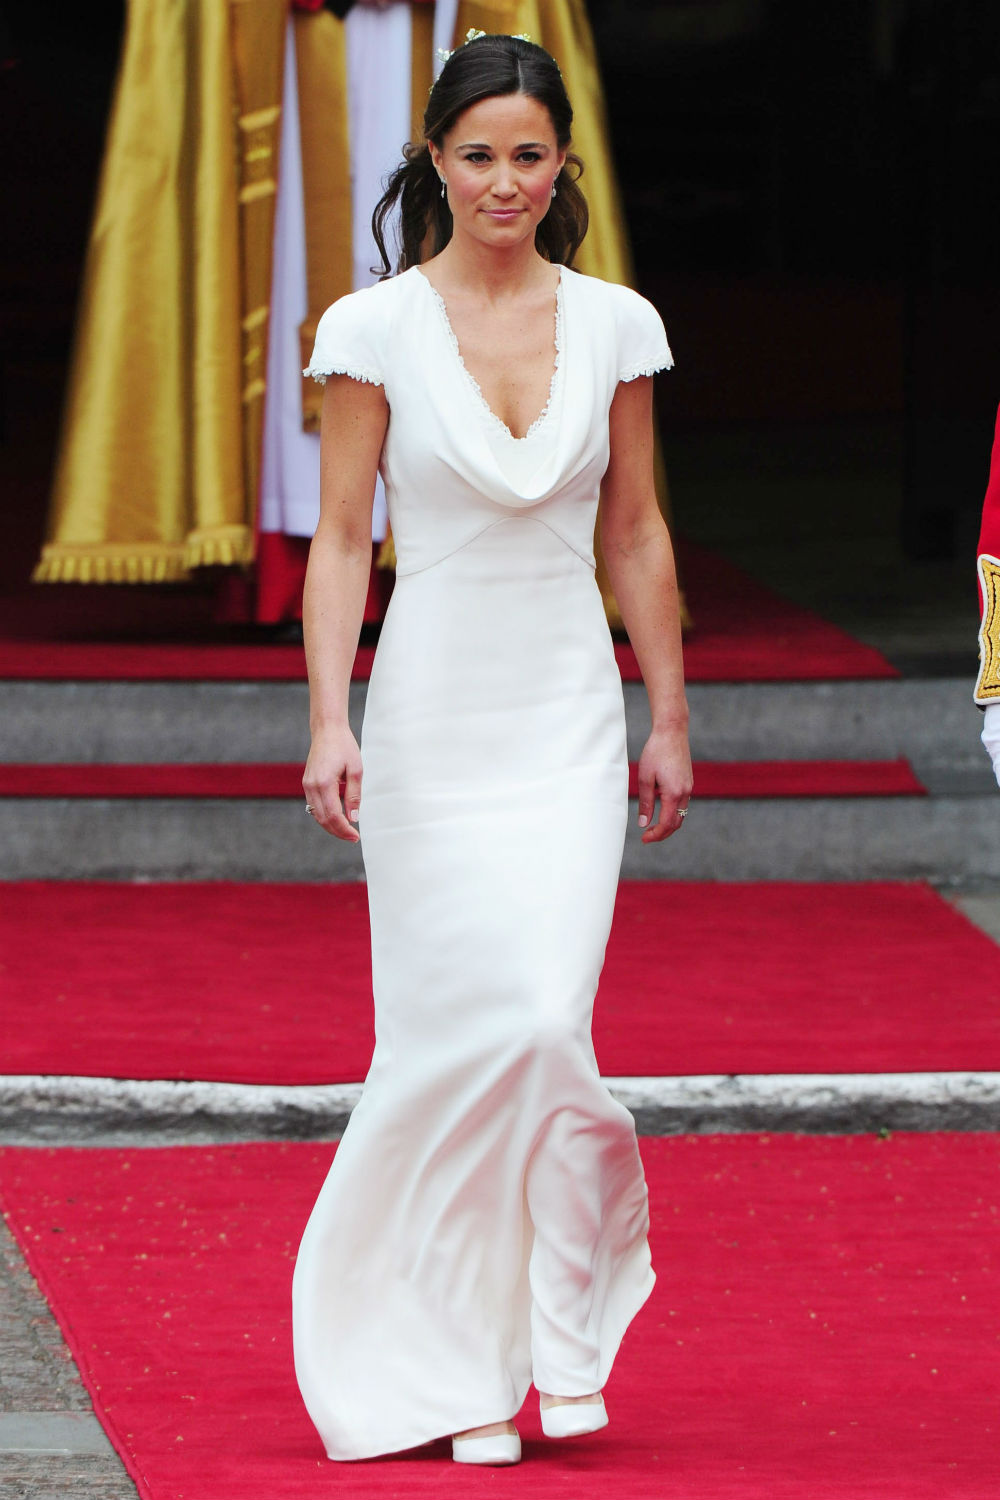 Pippa Middleton: That Bridesmaid Dress Changed My Life